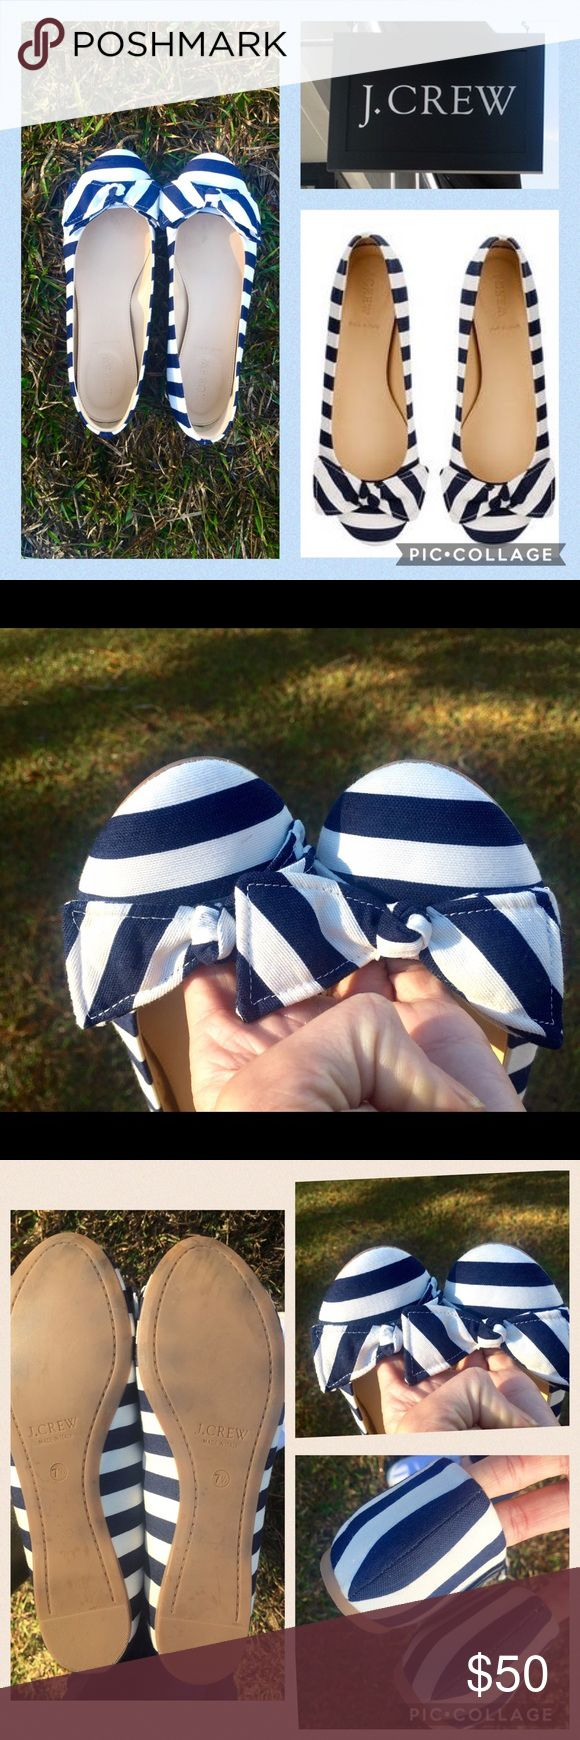 J. Crew Striped Cece Flats💙 J. Crew Striped Nautical Cece Ballet Flats with Bow  ♡ Size:   7.5 ♡Nautical Navy & White ♡ Item 70502; sold out online/in stores  ♡ These shoes are LIKE NEW other than nearly unnoticeable wear on toe-- worn once to an indoor baby shower ♡ Made in Italy J. Crew Shoes Flats & Loafers